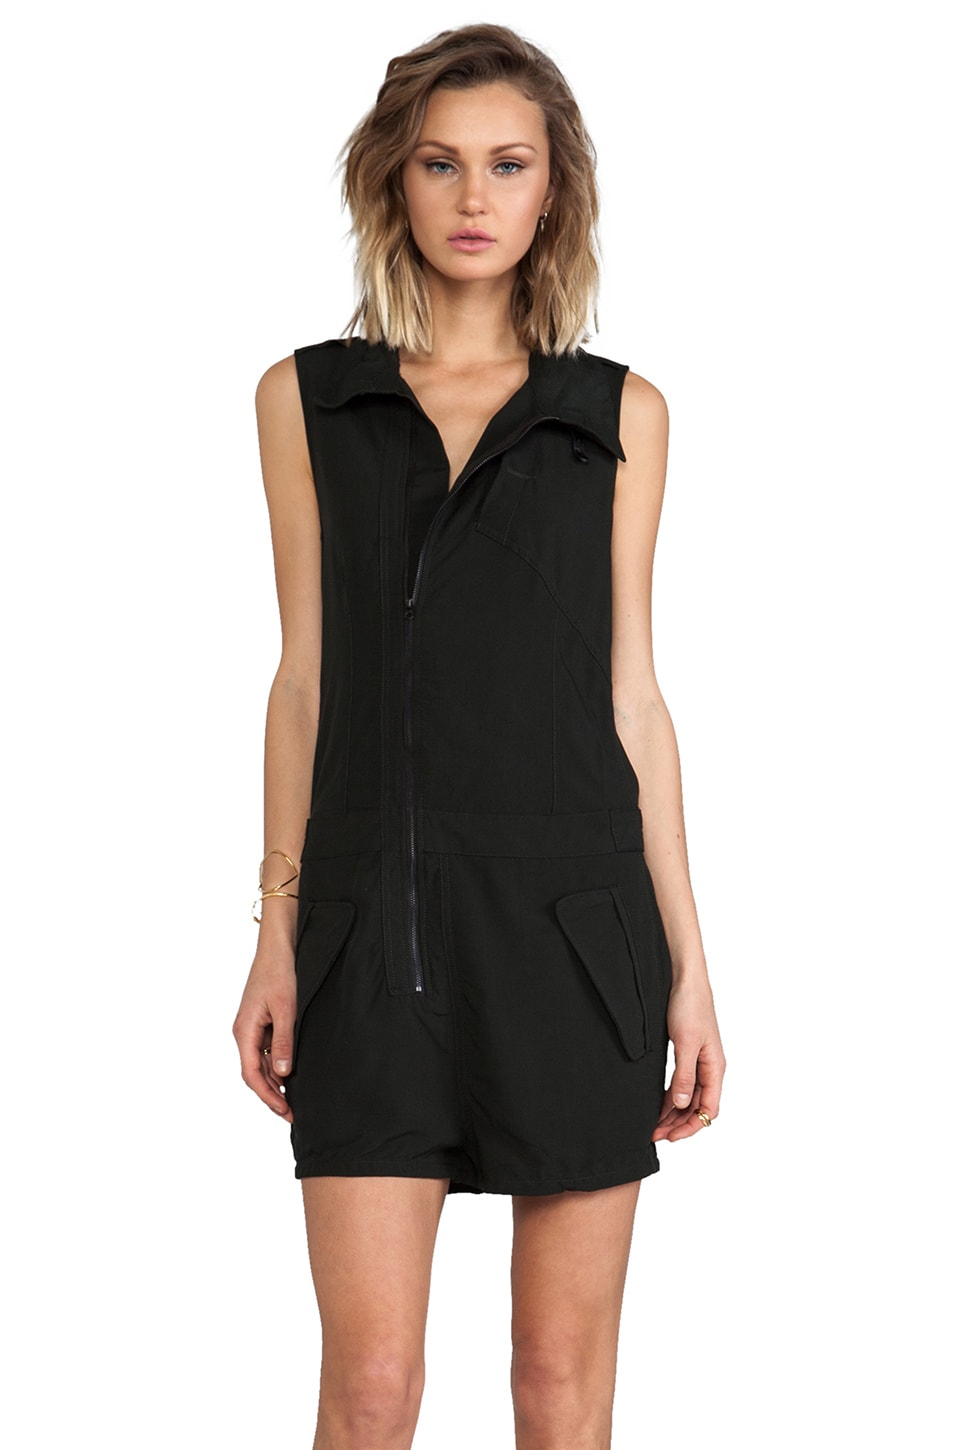 G-Star Avi Short Suit Romper in Barbour